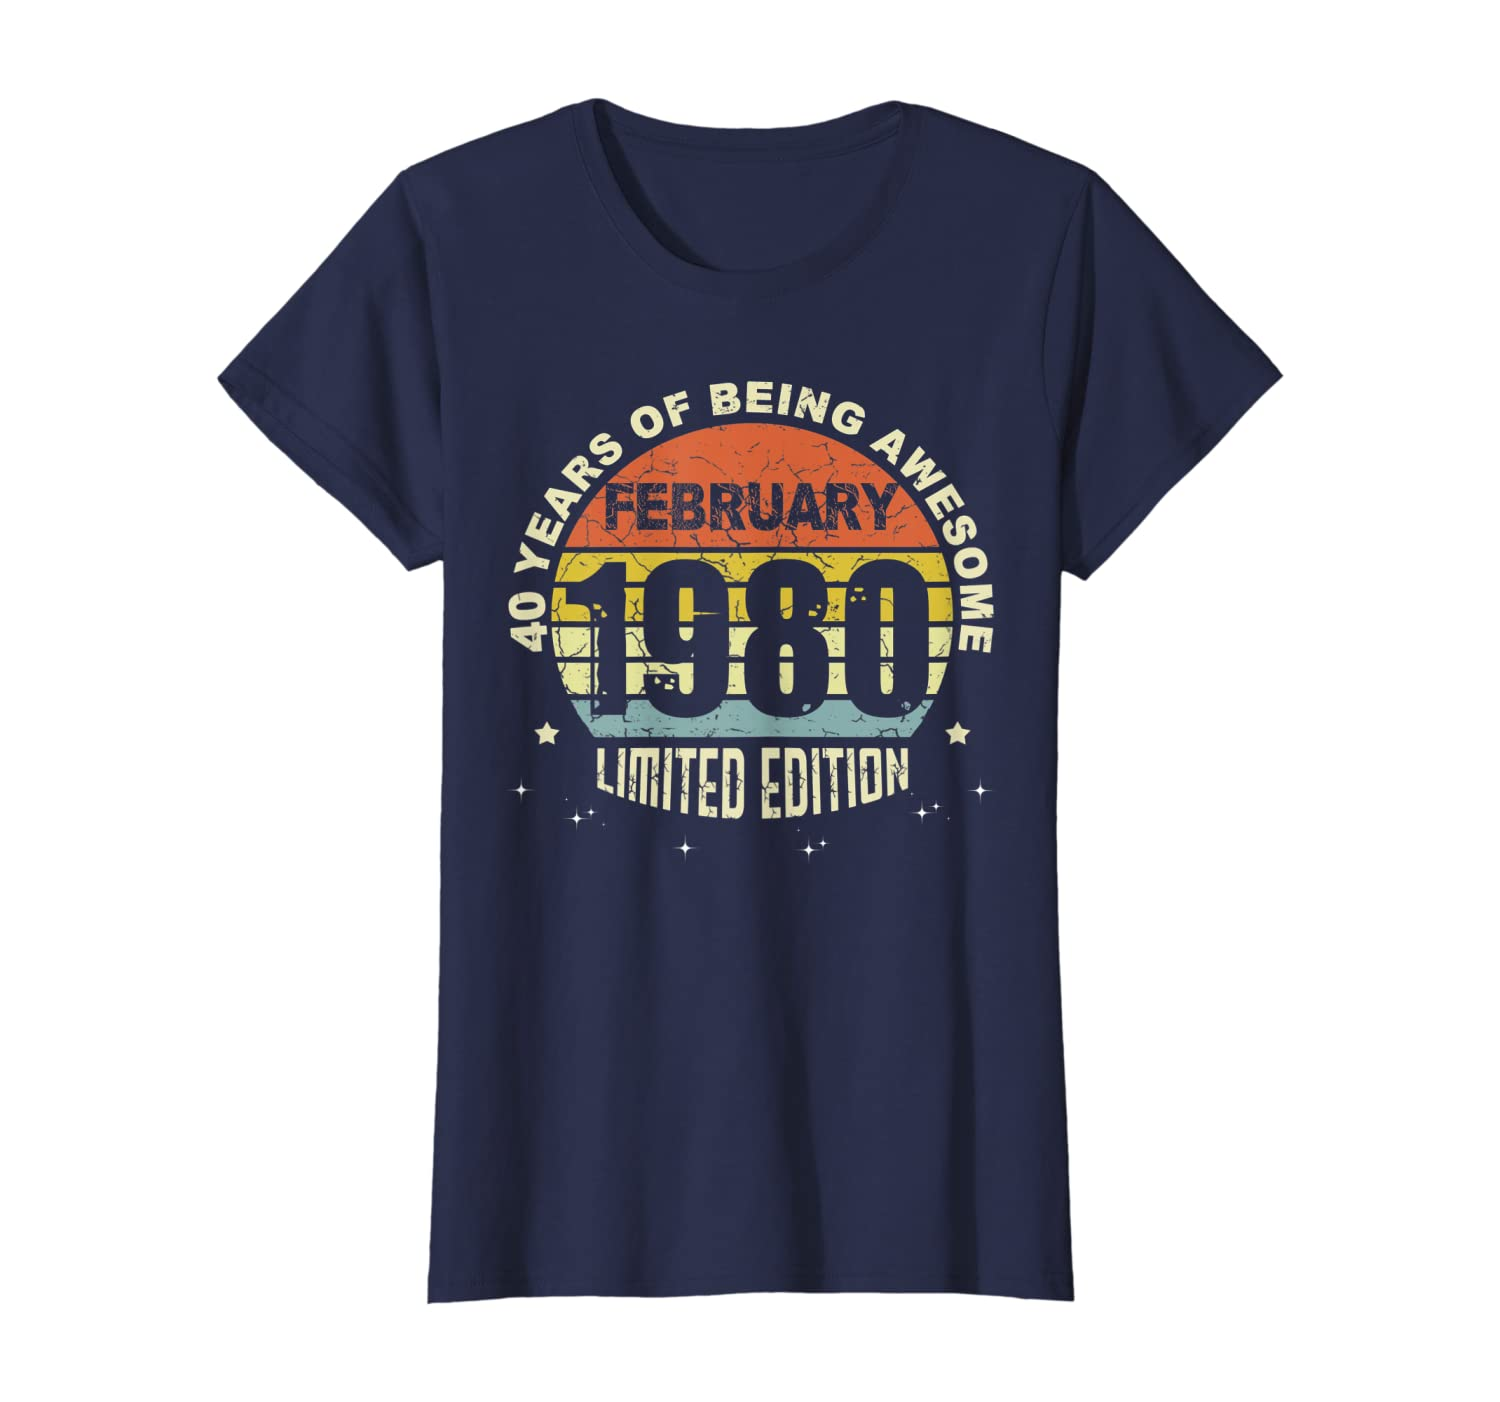 40 limited edition, Made in February 1980 40th Birthday T-Shirt